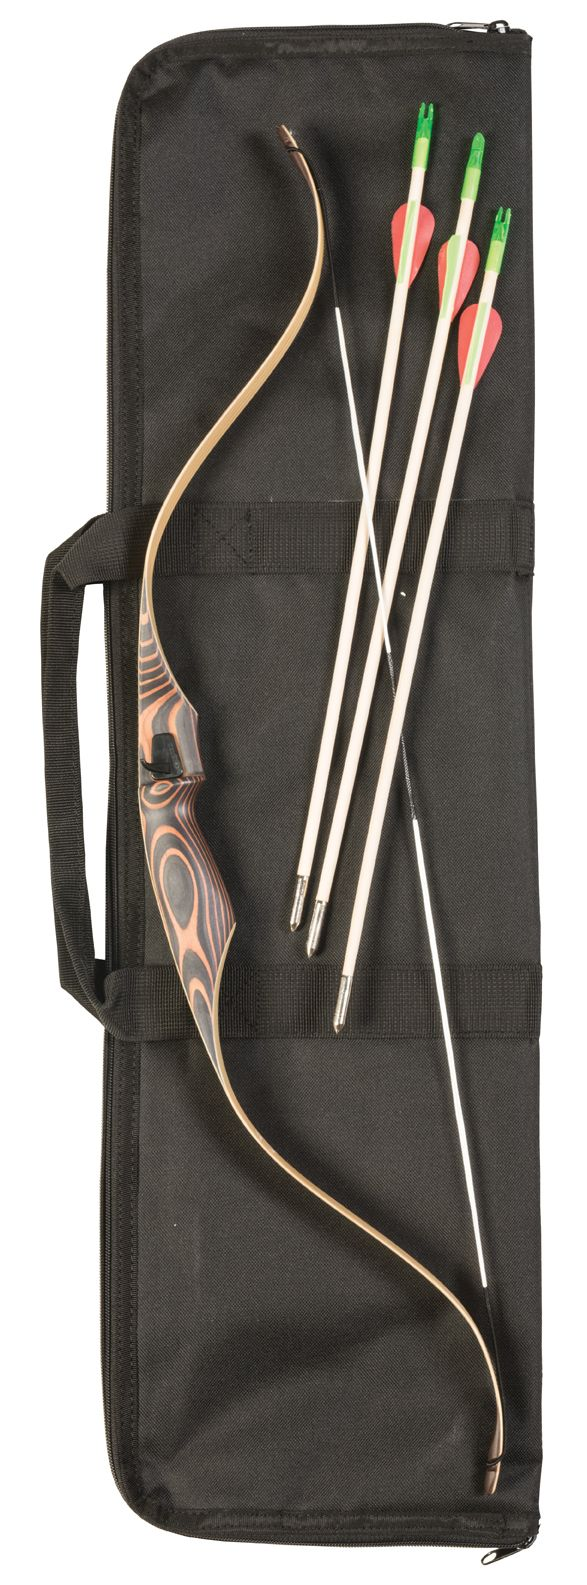 Check out the deal on Little Hawk Youth Bow Set at 3Rivers Archery Supply